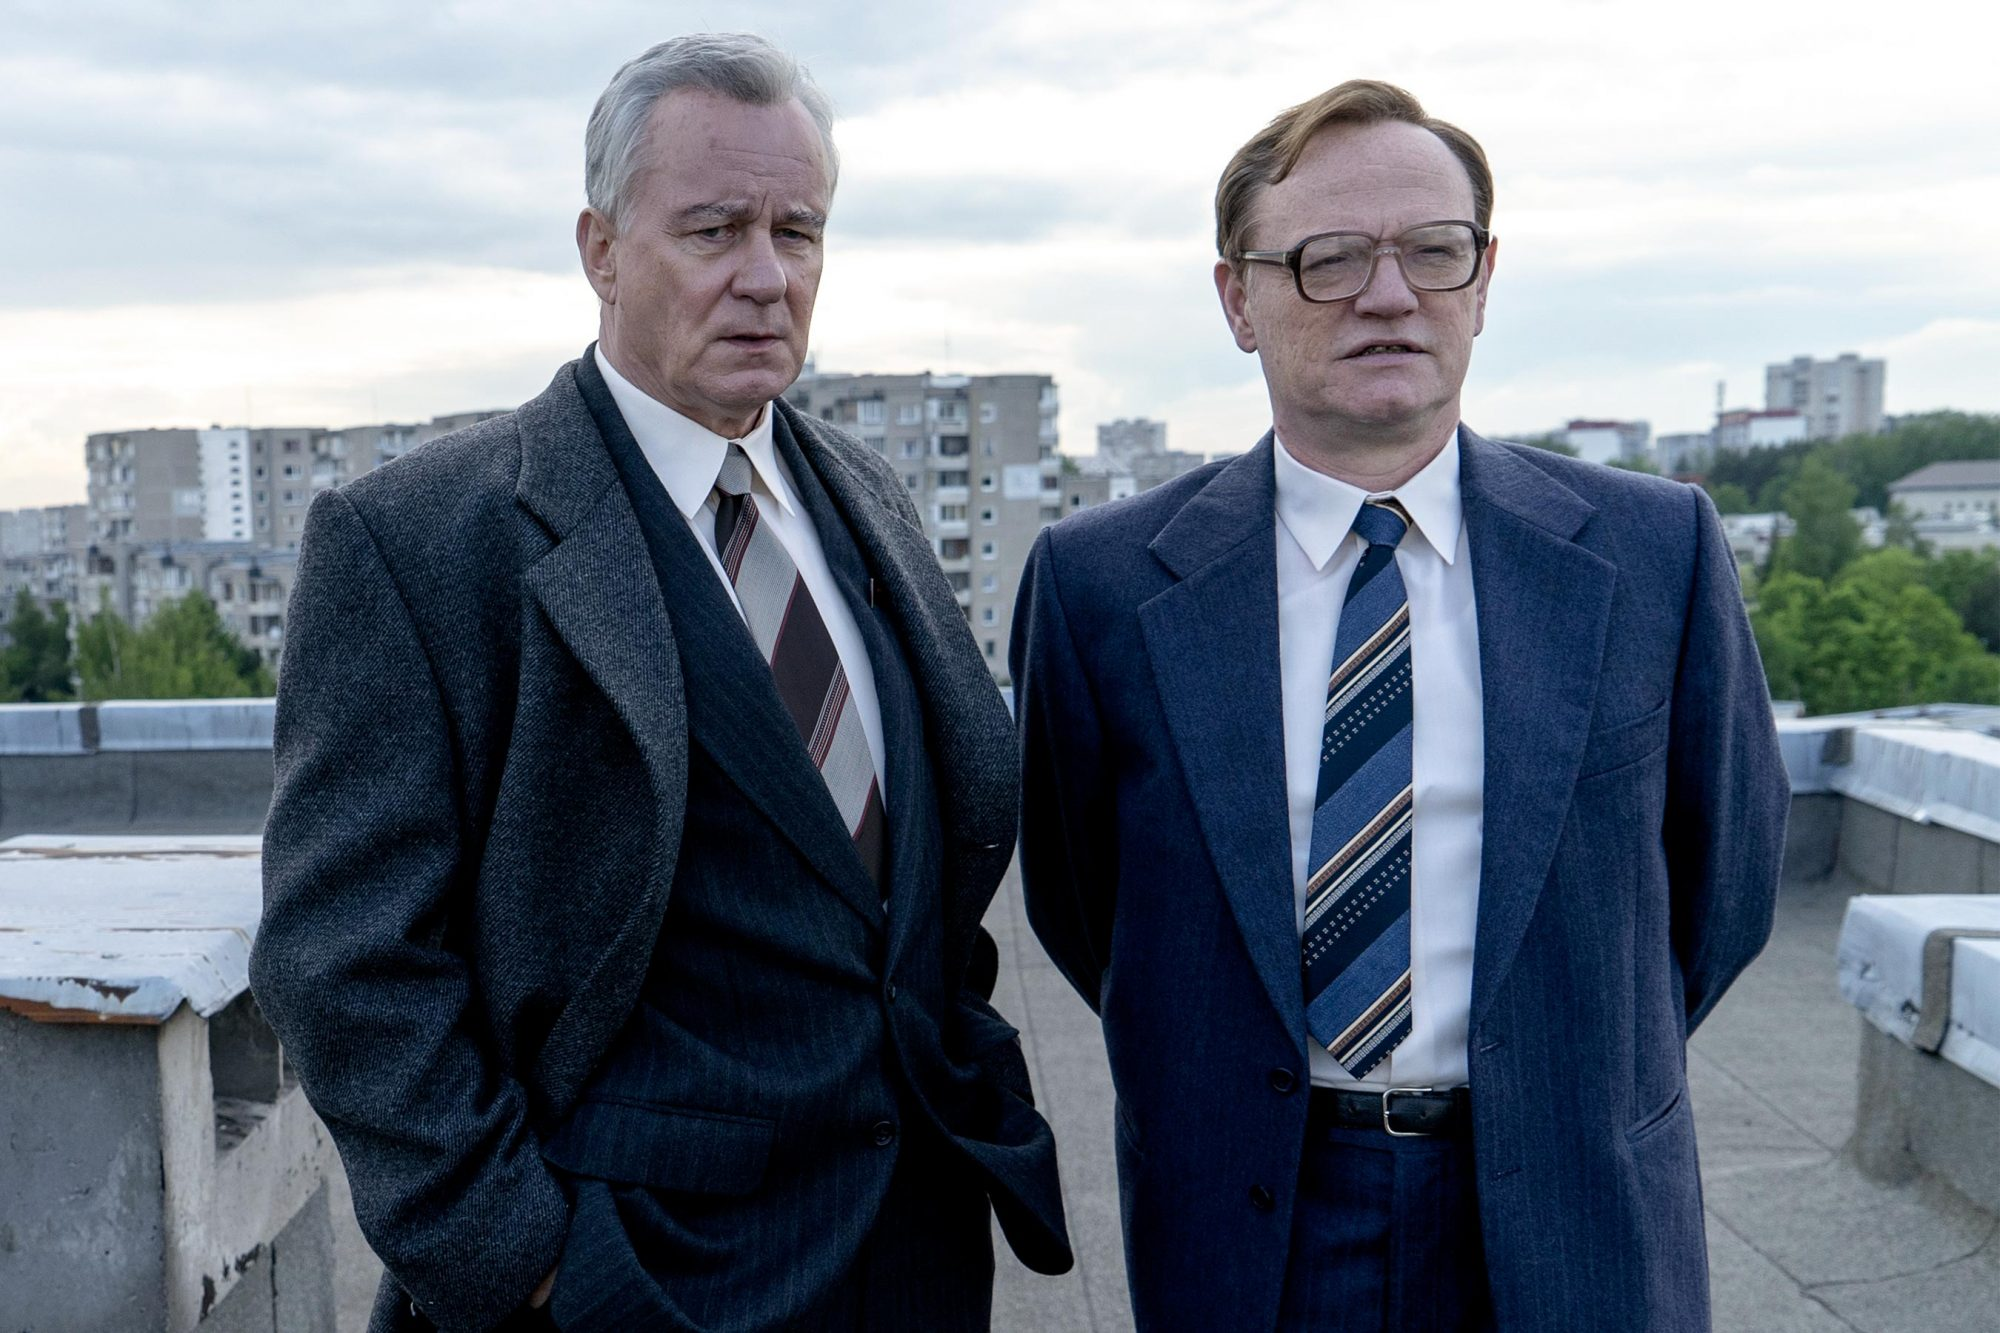 Chernobyl Episode 2: Stellan Skarsgård, Jared Harris. photo: Liam Daniel/HBO